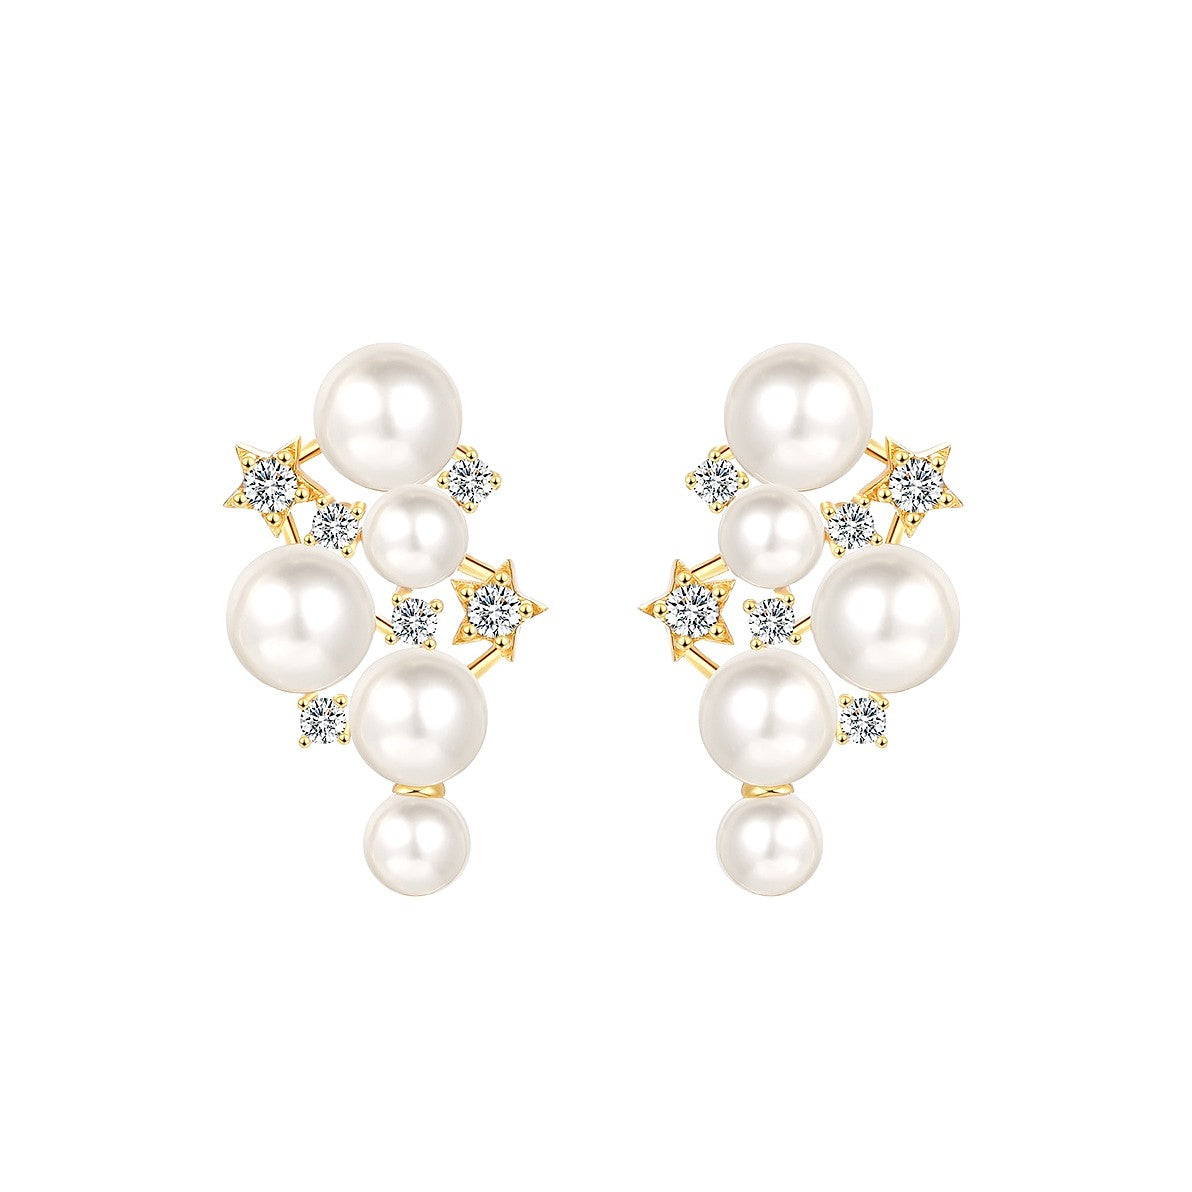 multi-pearl earrings accessorized with a series of crystal golden stars displayed on white background